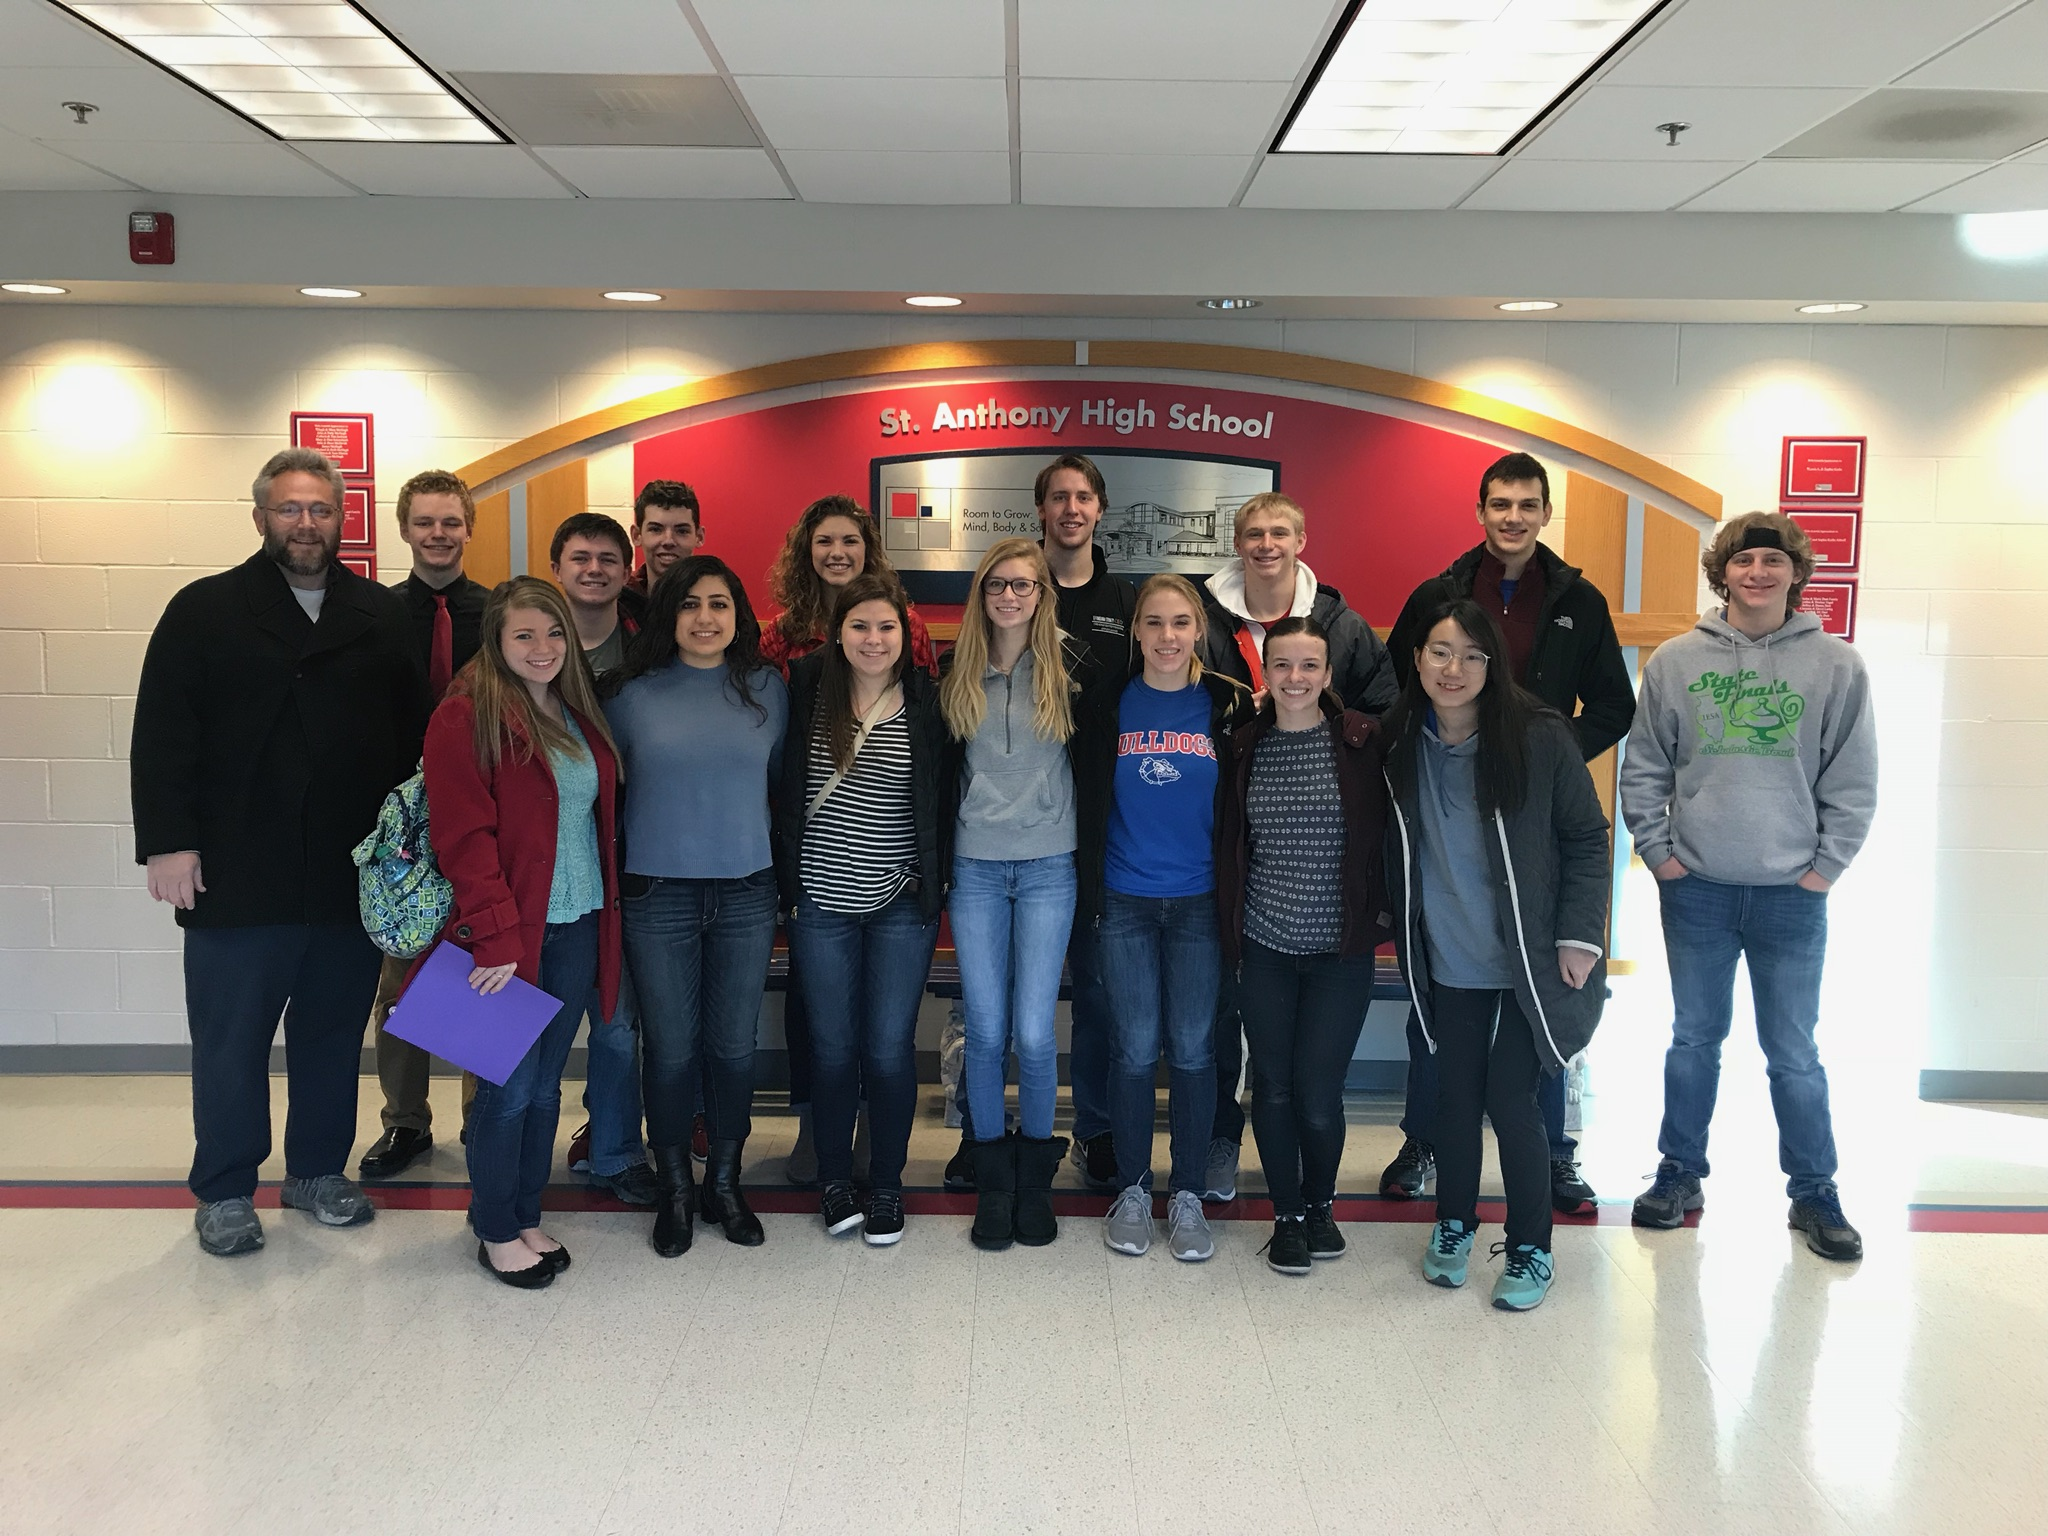 St. Anthony High School WYSE Team Takes 1st Place in Regional Contest